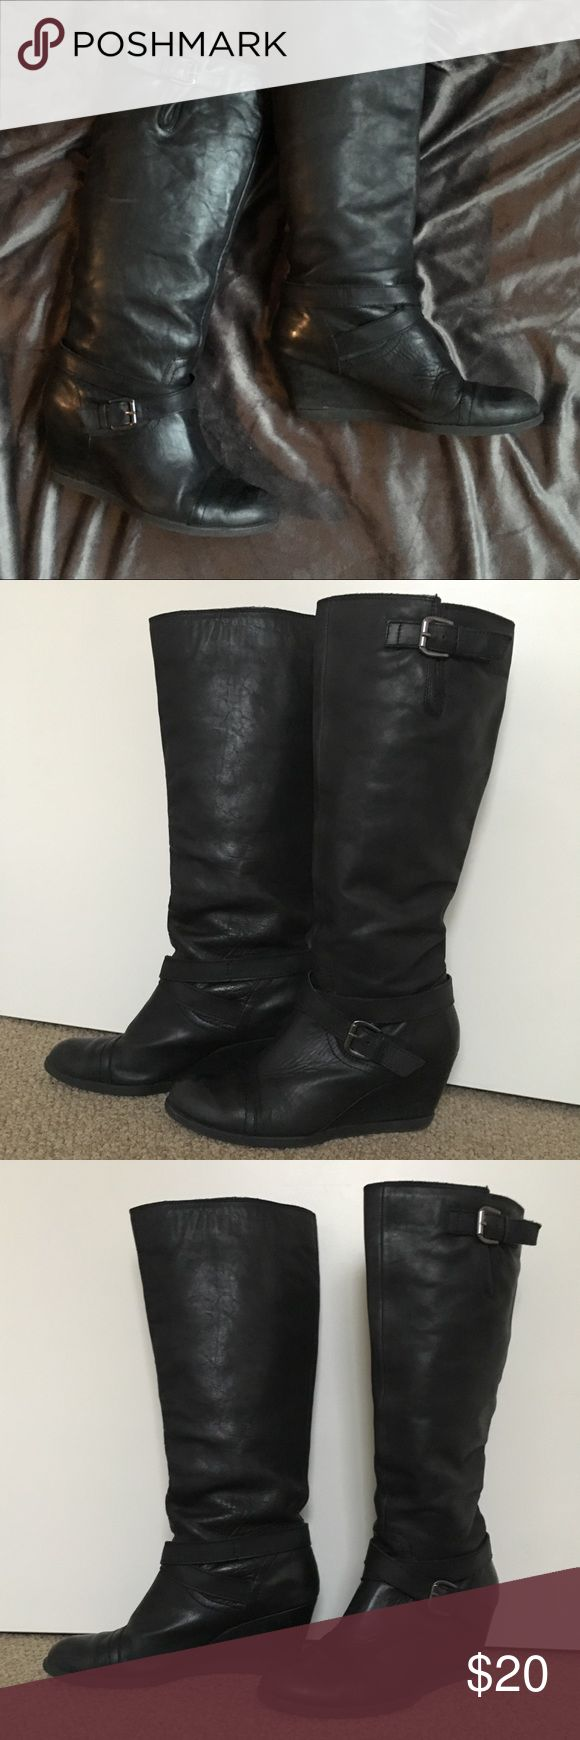 """Knee-high Boots 🖤 These boots are great quality, and comfortable too. Made of real leather exterior, and lined inside with what feels like a soft thin fleece. Accented with an ankle strap and buckle, as well as a buckle at the top that can be let in or out depending on calf size. There's a little dent on one heel, shown in photos. Otherwise recently leather conditioned and in good used condition. They are Euro size 39 with 3"""" heels. Shoes Heeled Boots"""